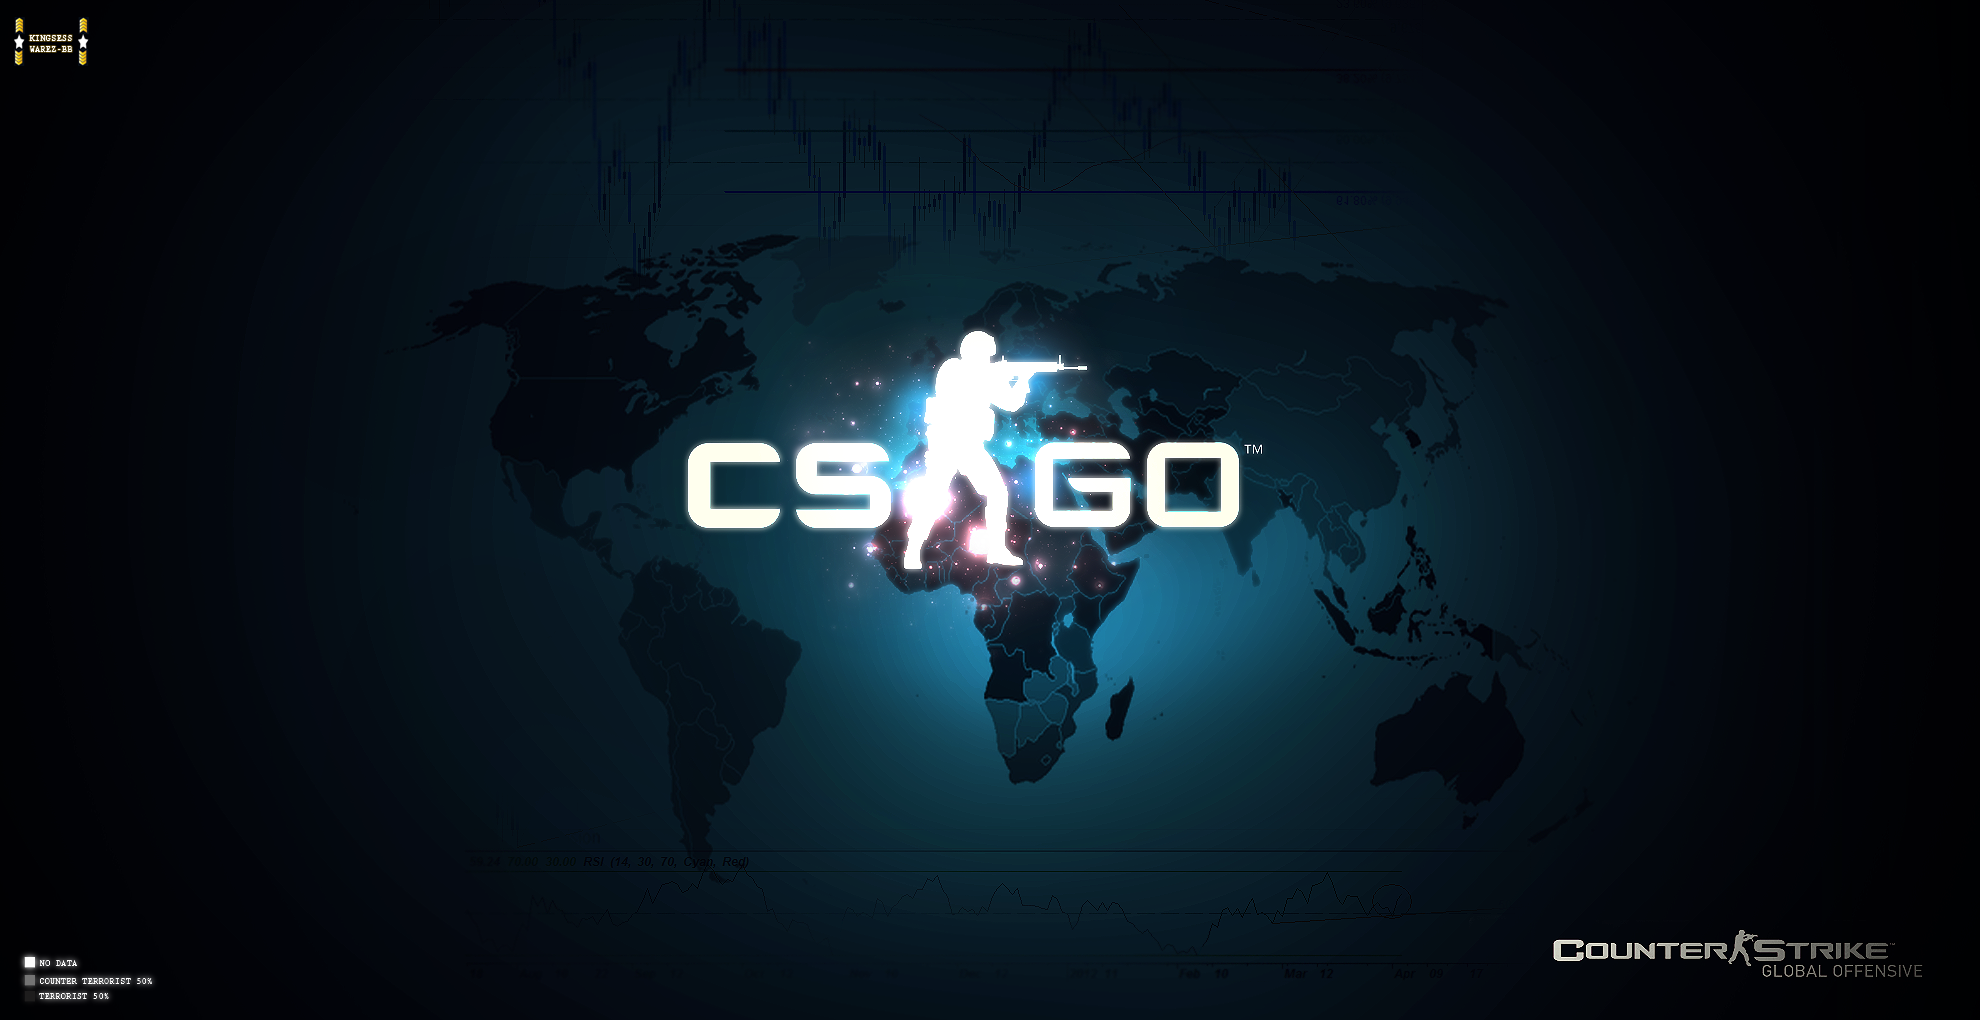 Download 1980x1020 Cs Go HD Wallpapers for Free | B.SCB WP&BG Collection